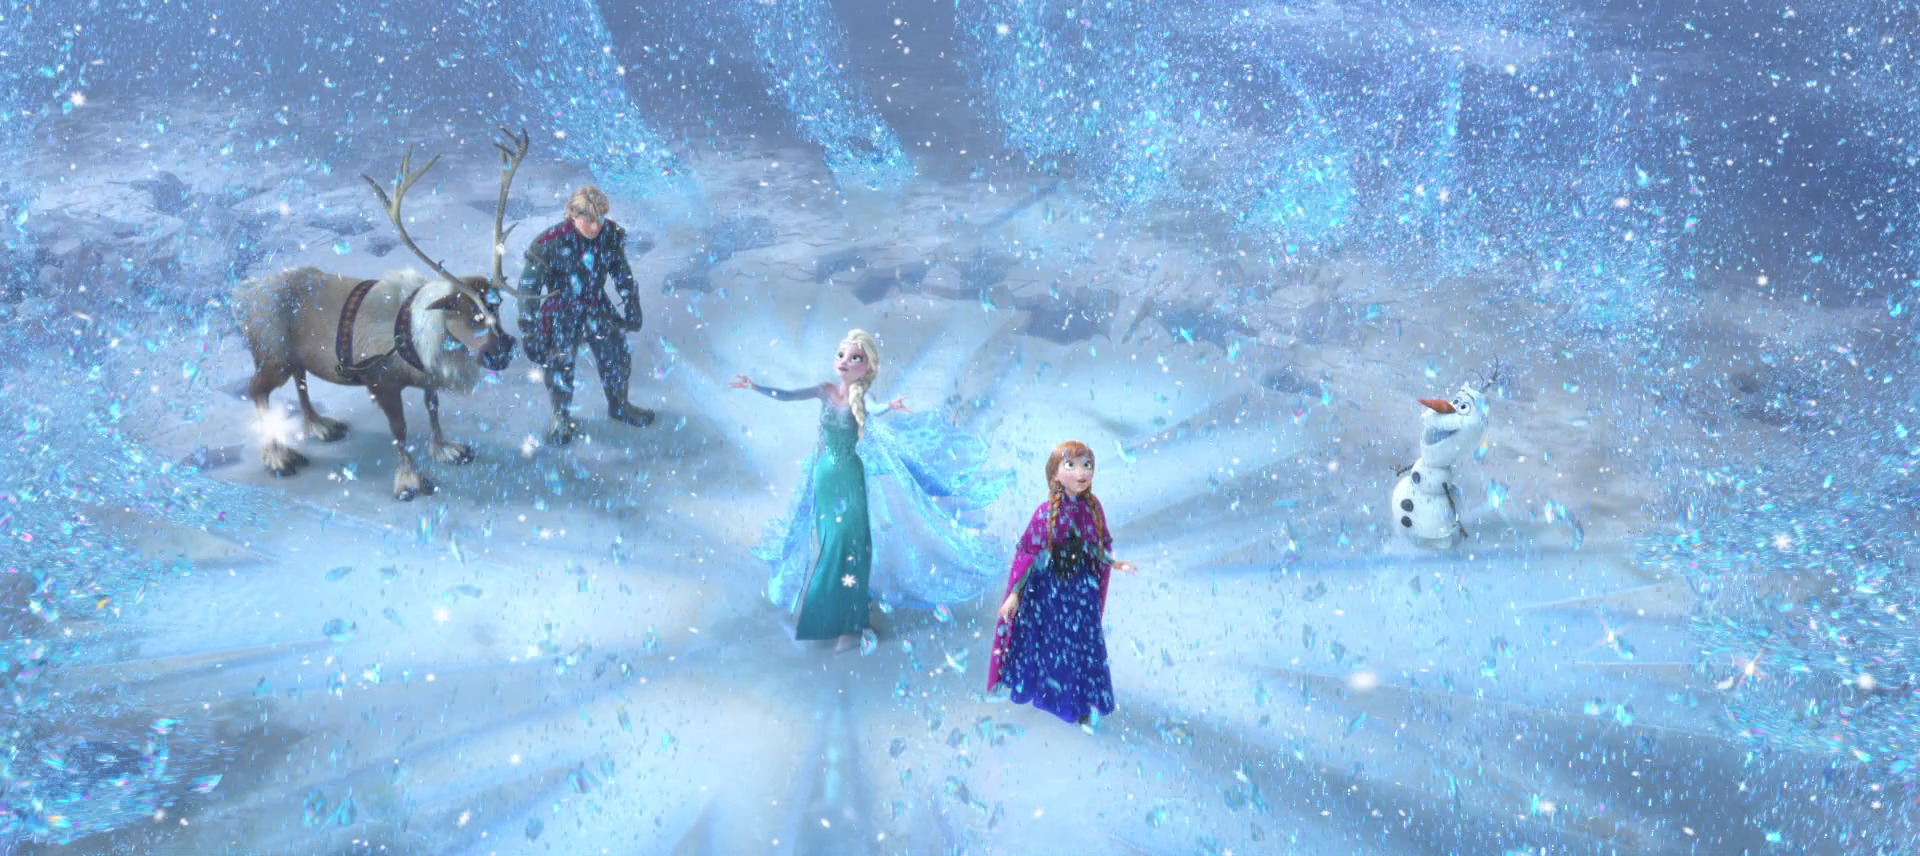 Elsa The Snow Queen Disney Wiki FANDOM Powered By Wikia - Couple let their dog film their snowy wedding day and the result was magical